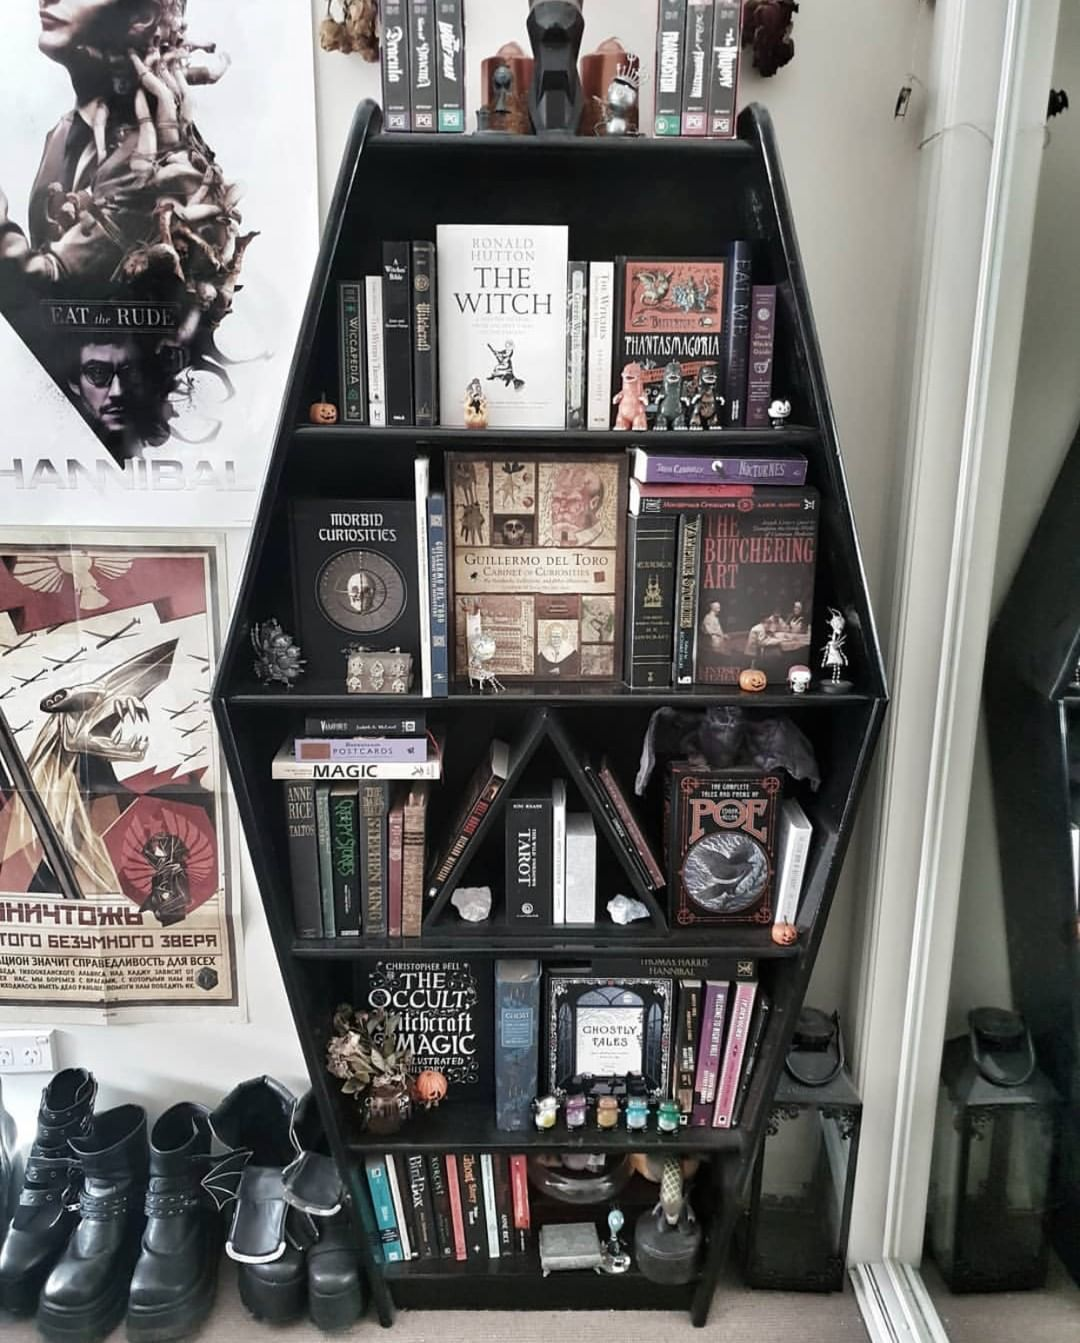 "Photo of ⠀⠀⠀⠀⠀⠀⠀⠀⠀ATTITUDE CLOTHING Co. on Instagram: ""This bespoke bookcase is so perfect!! 😭 📸 @Fiiendfyre . #books #bookcase #coffin #black #goth #gothic #gothgoth #home #homegoals"""